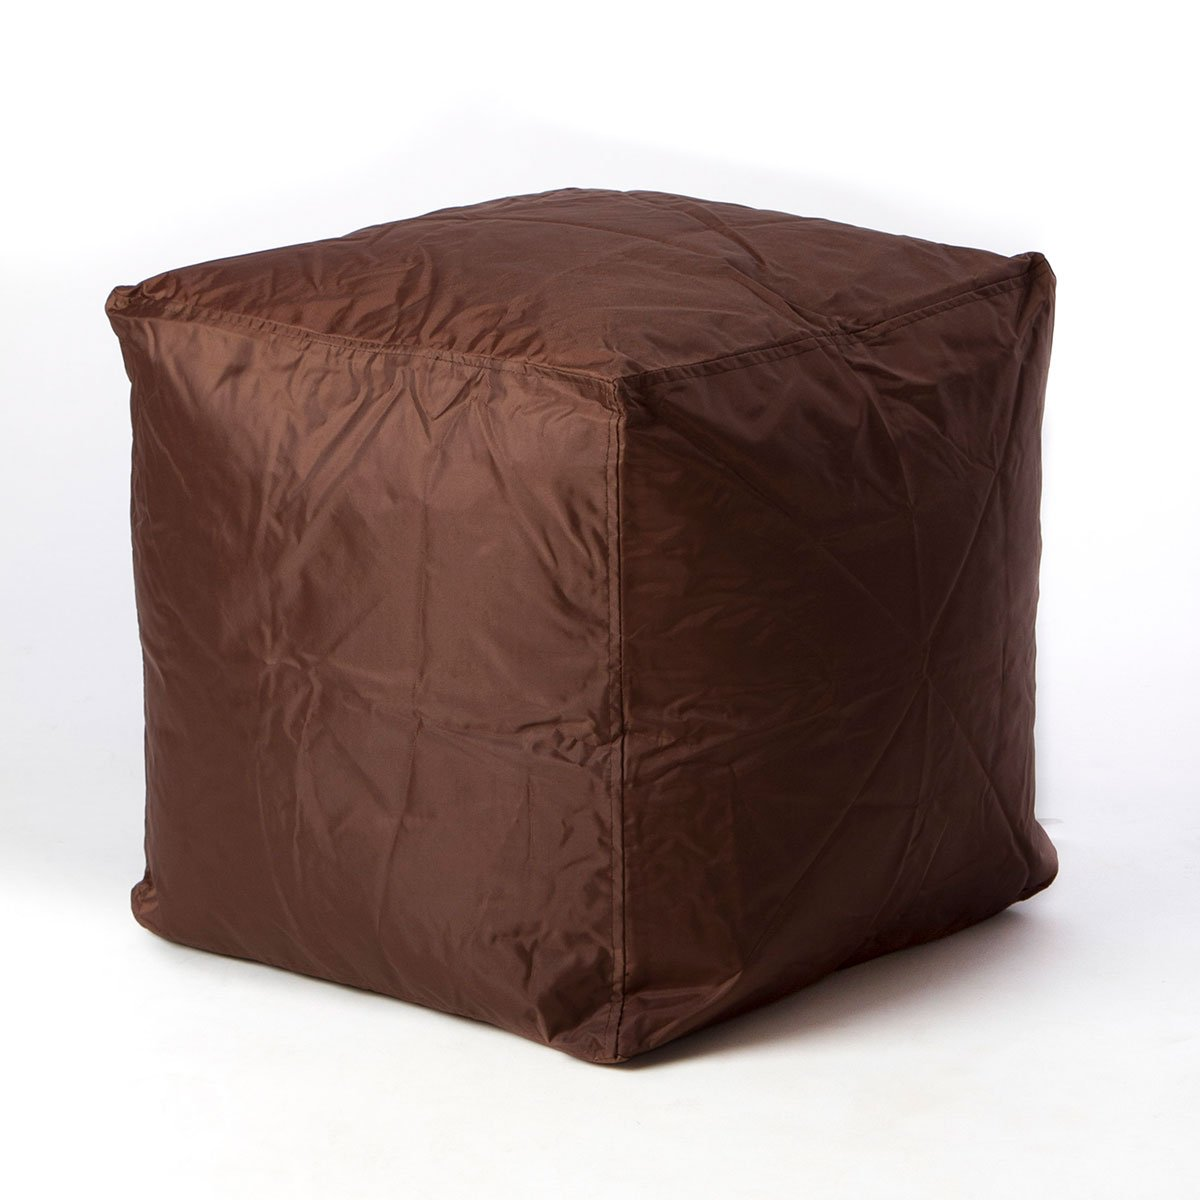 Bean Bag Cube Ottoman Footstool (Brown) | | Nylon Fabric - Hand Filled in the USA | 16 x 16 x 16 inches |